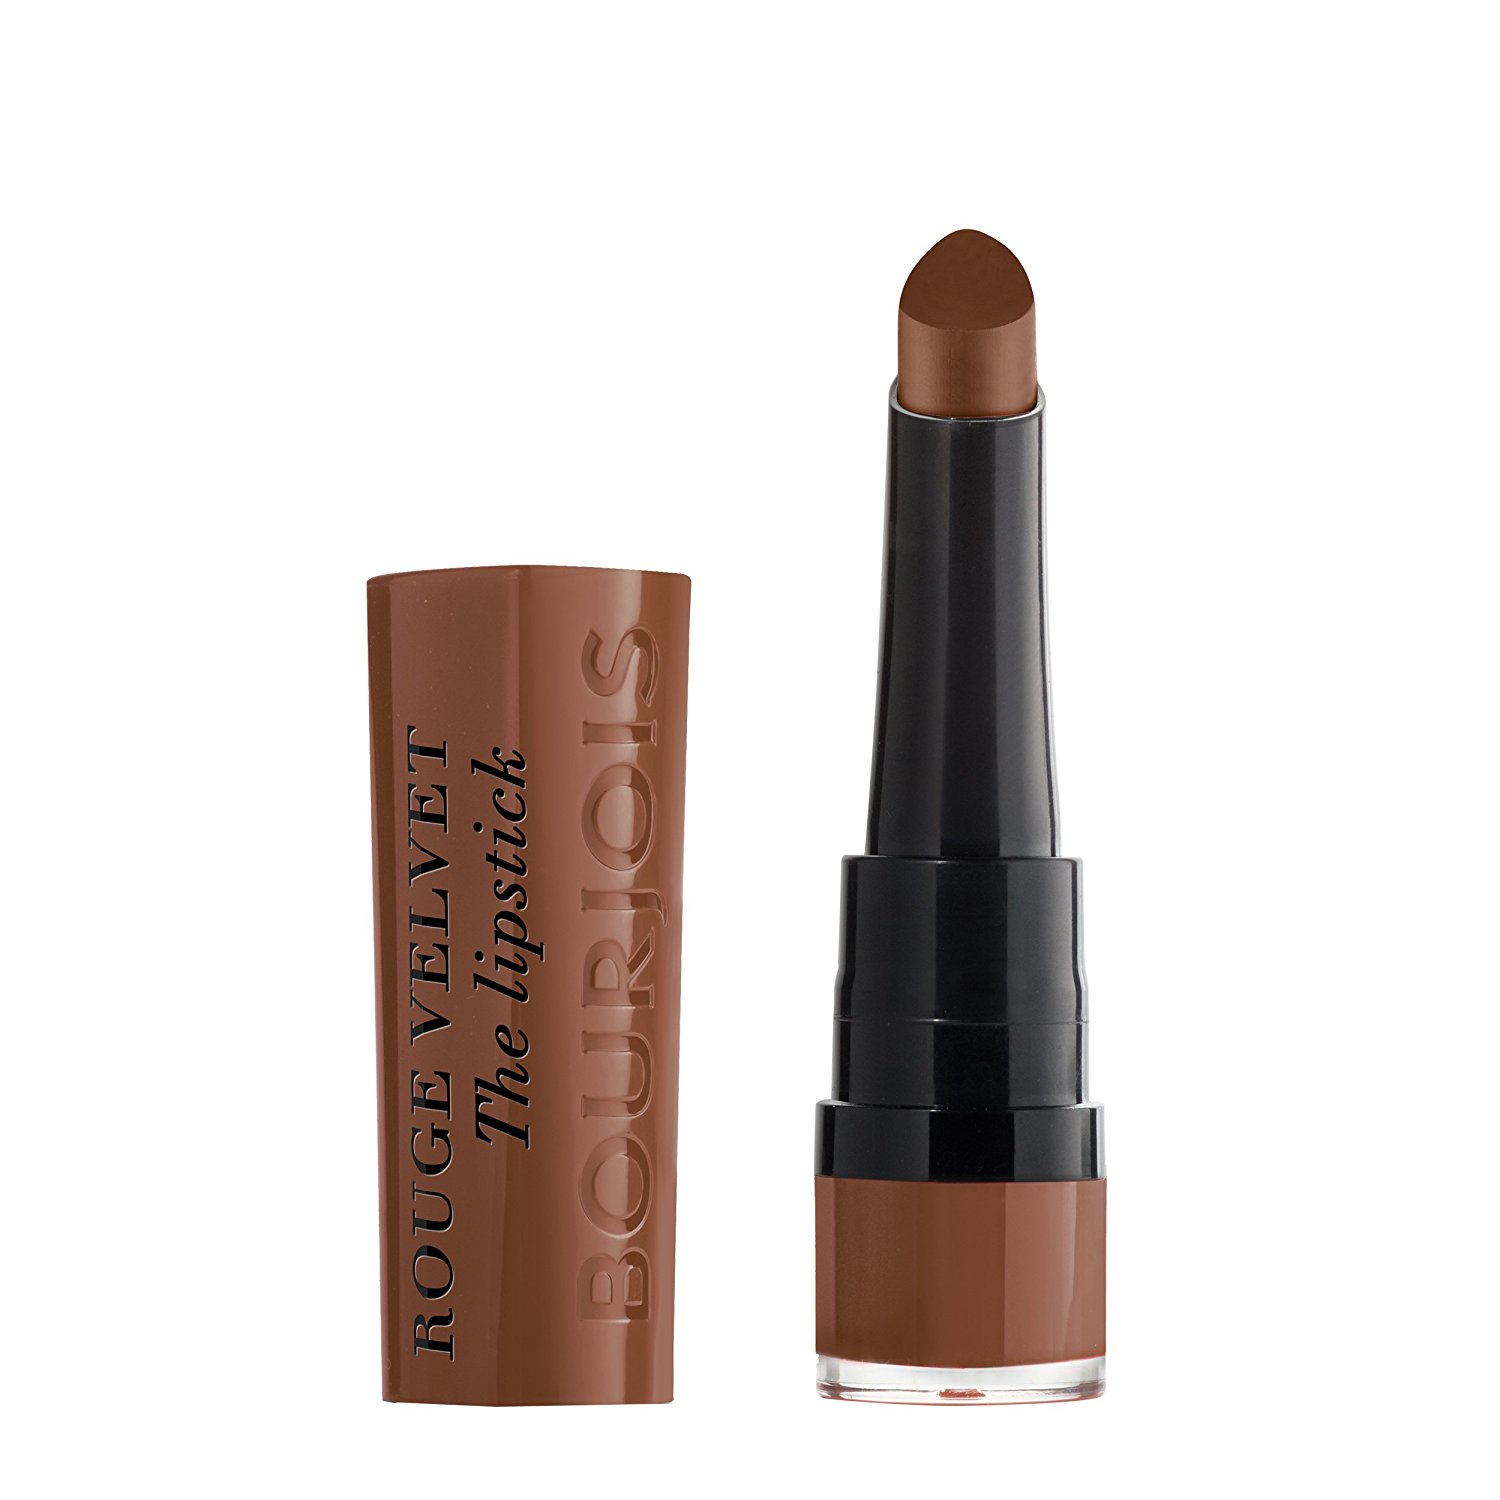 BOURJOIS ROUGE VELVET THE LIPSTICK 014 BROWNETTE